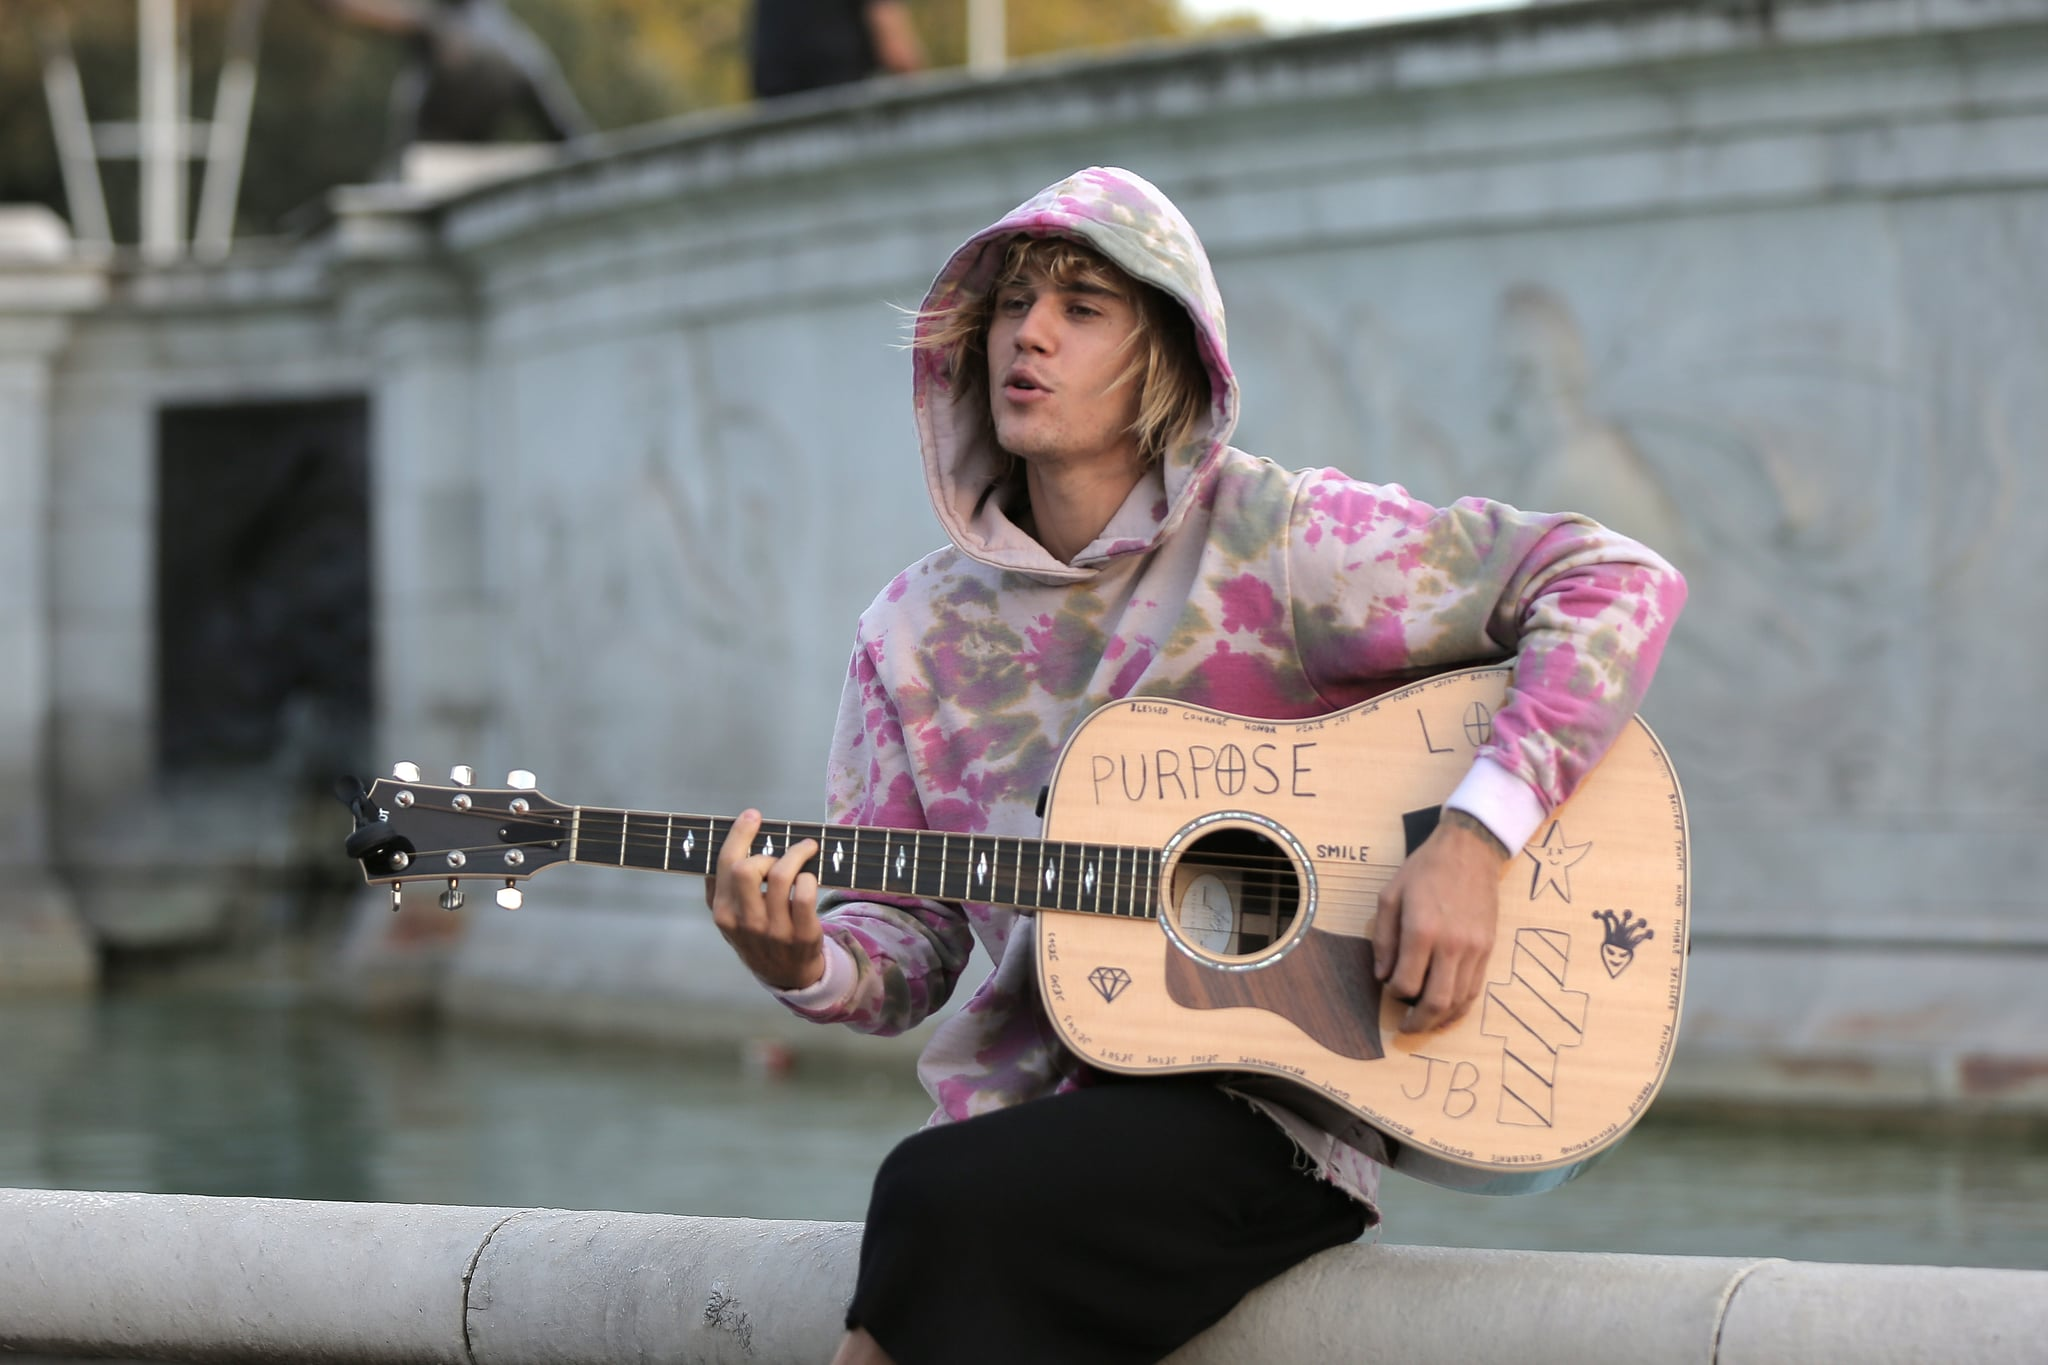 LONDON, ENGLAND - SEPTEMBER 18:  Justin Bieber stops at the Buckingham Palace fountain to play a couple of songs with his guitar for Hailey Baldwin and fans on September 18, 2018 in London, England.  (Photo by Ricky Vigil/GC Images)